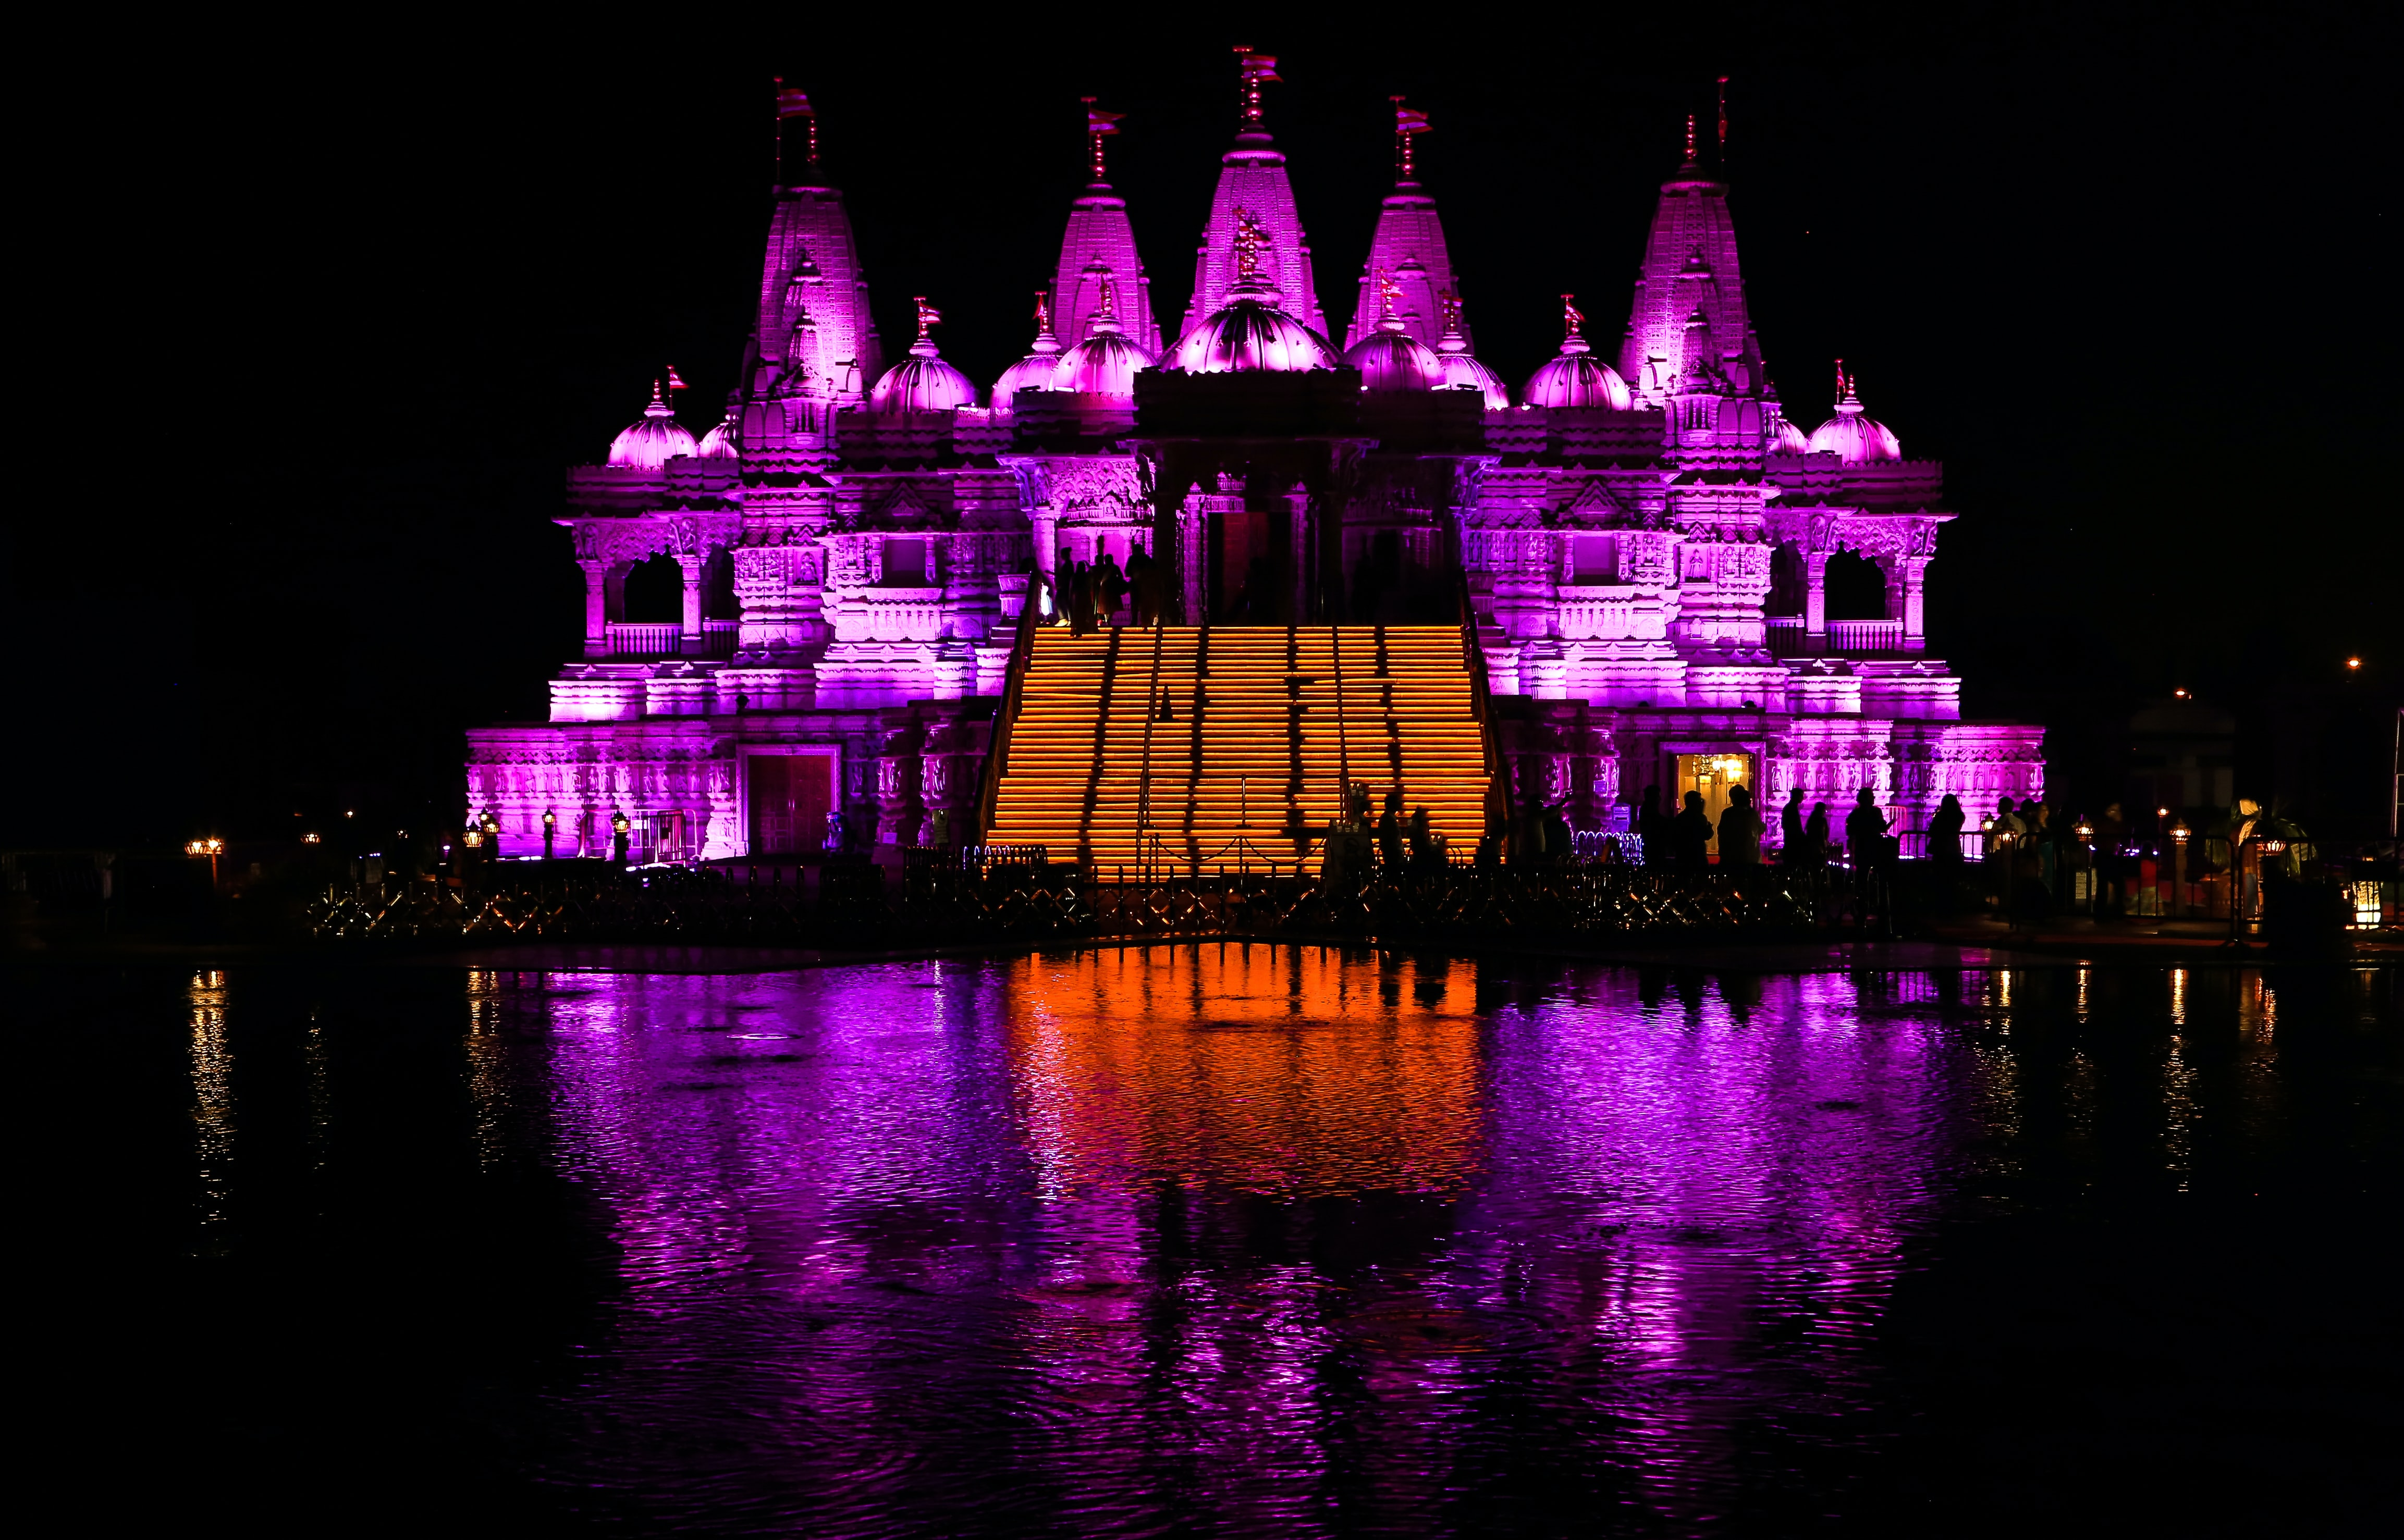 building with pink and orange lights at night